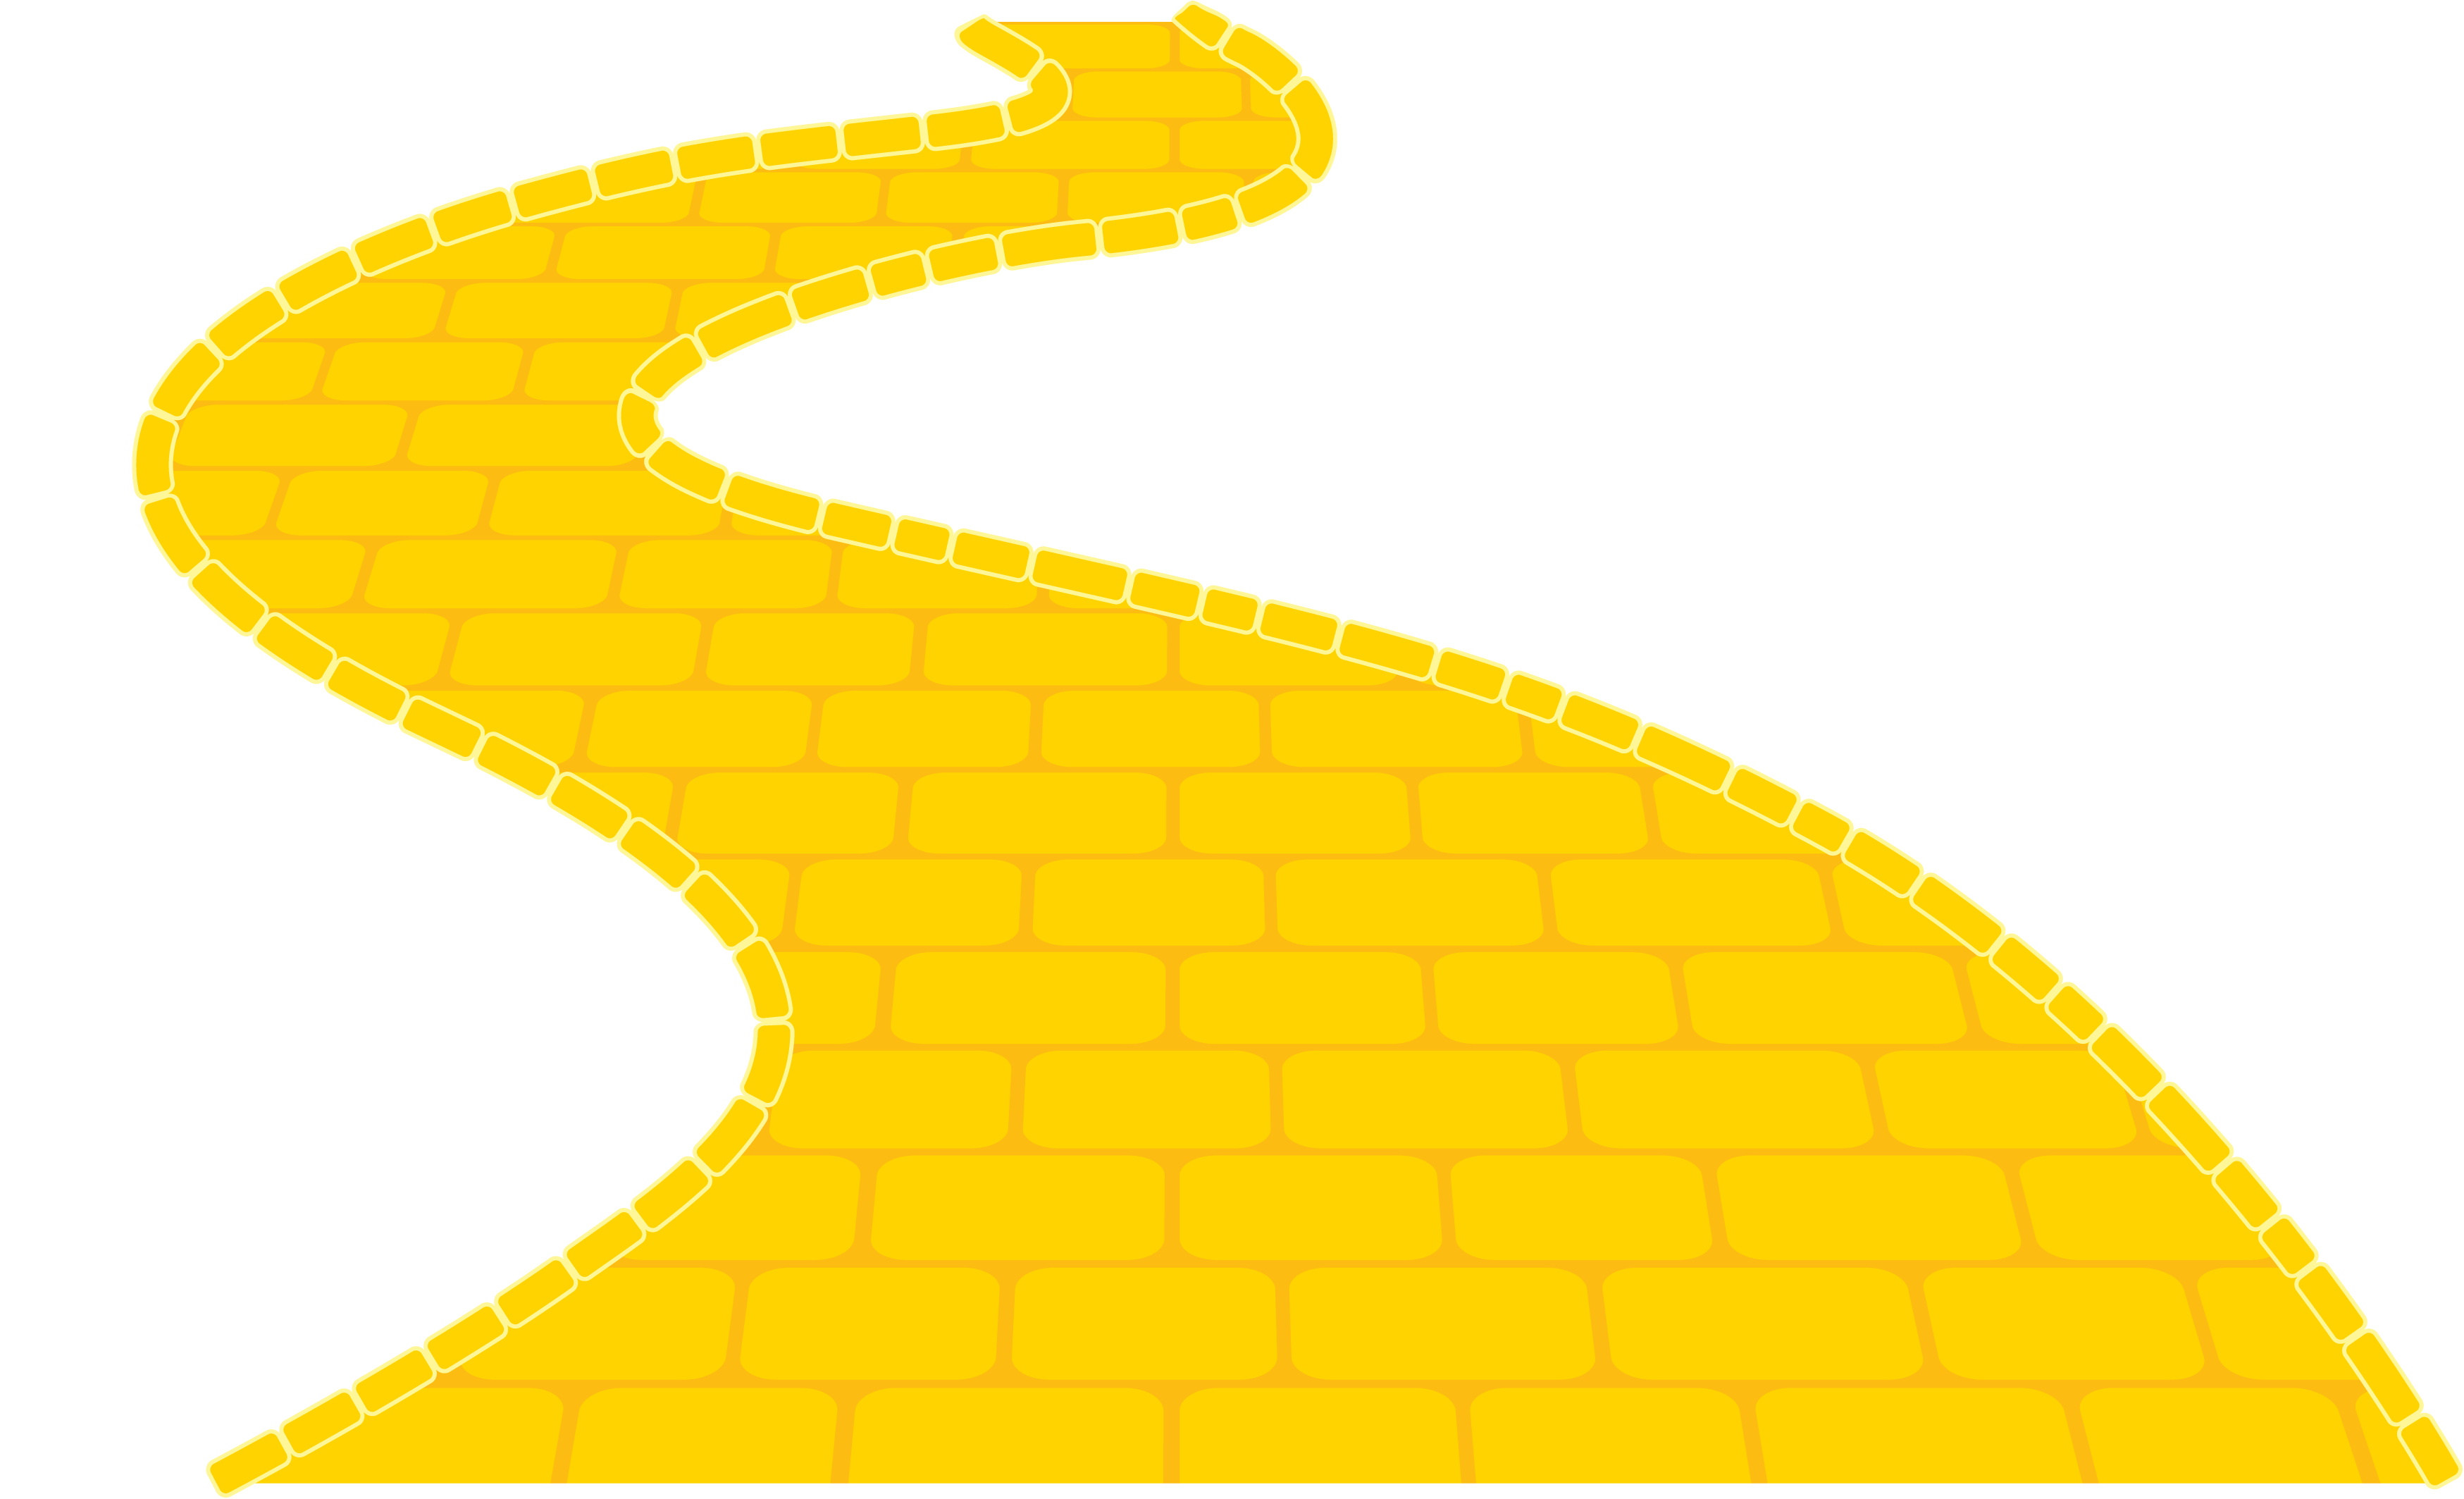 Pin By Lora Mills On Strickly Business Expo Yellow Brick Road Brick Road Clip Art